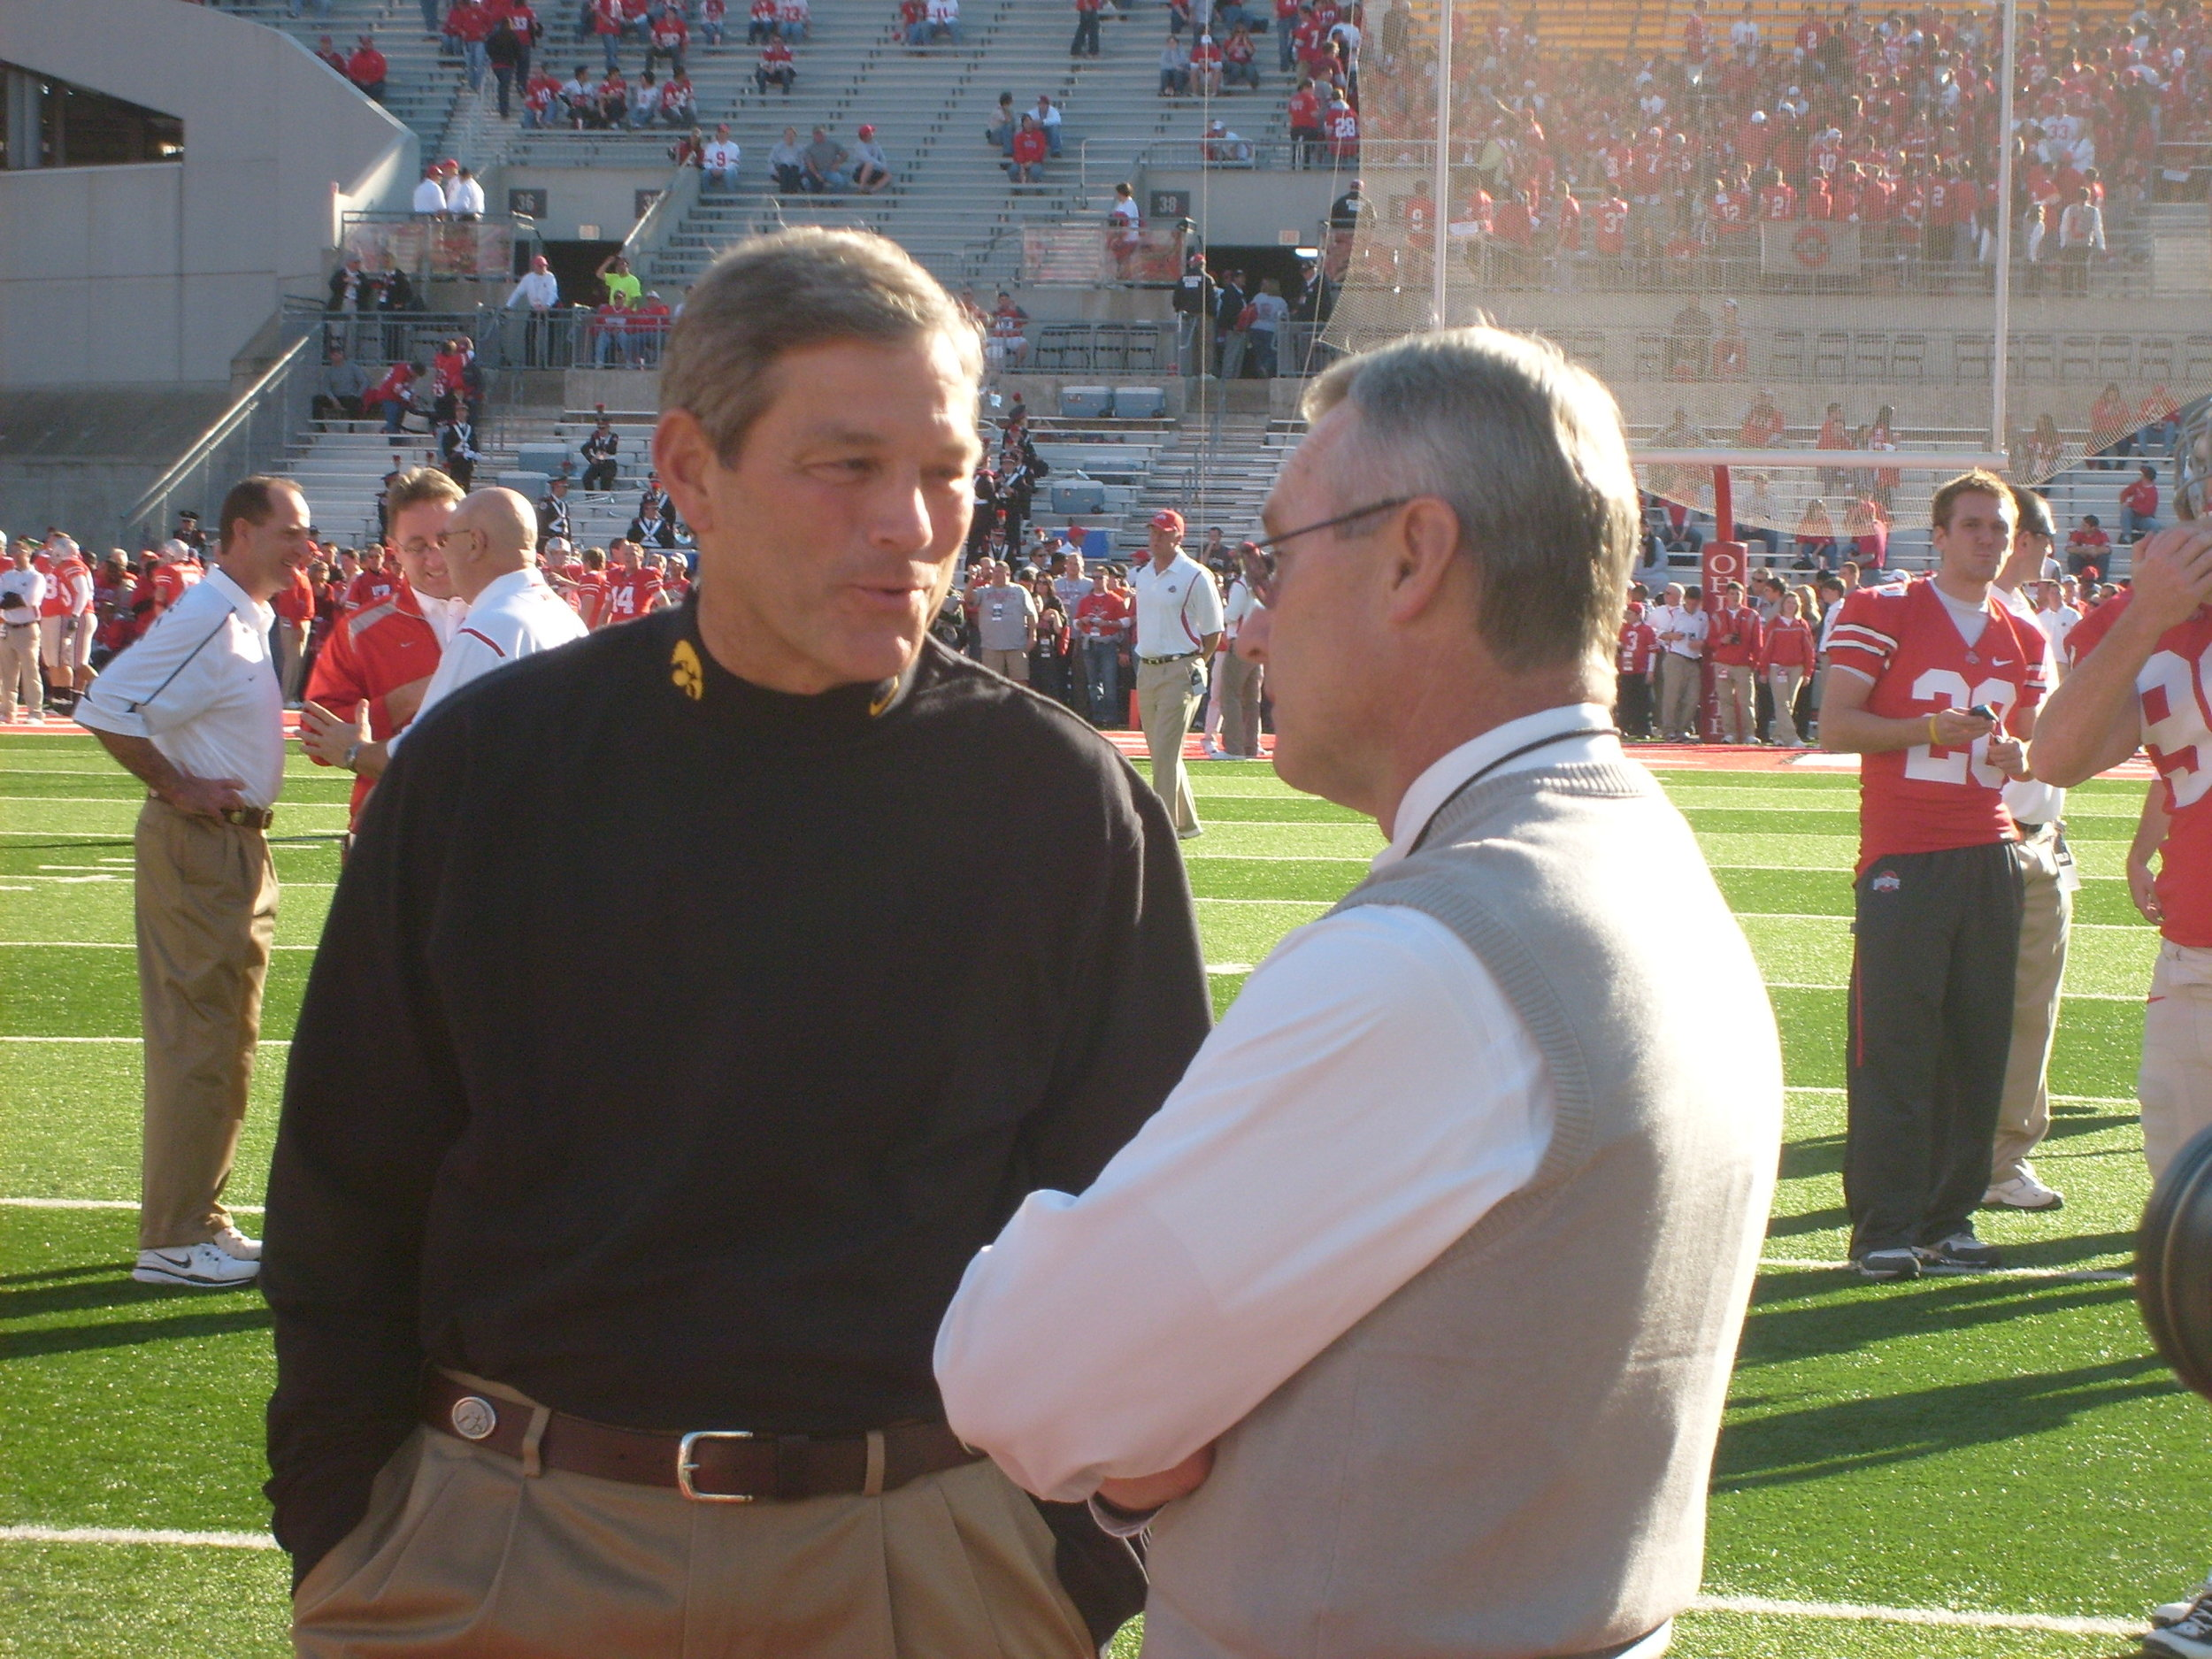 Ferentz_and_Tressel_1.jpg